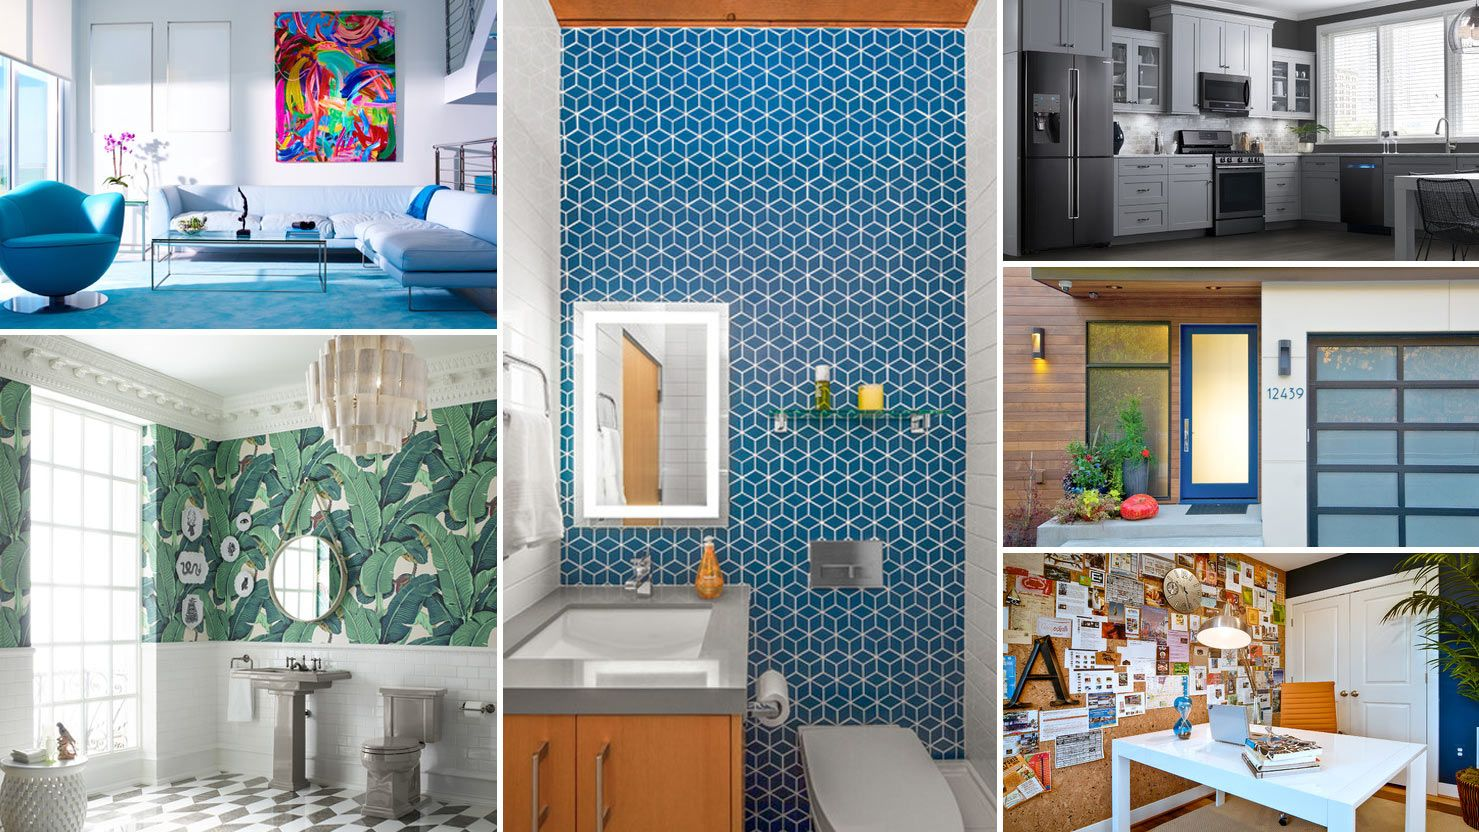 These 8 Emerging Design Trends Will Be All the Rage in